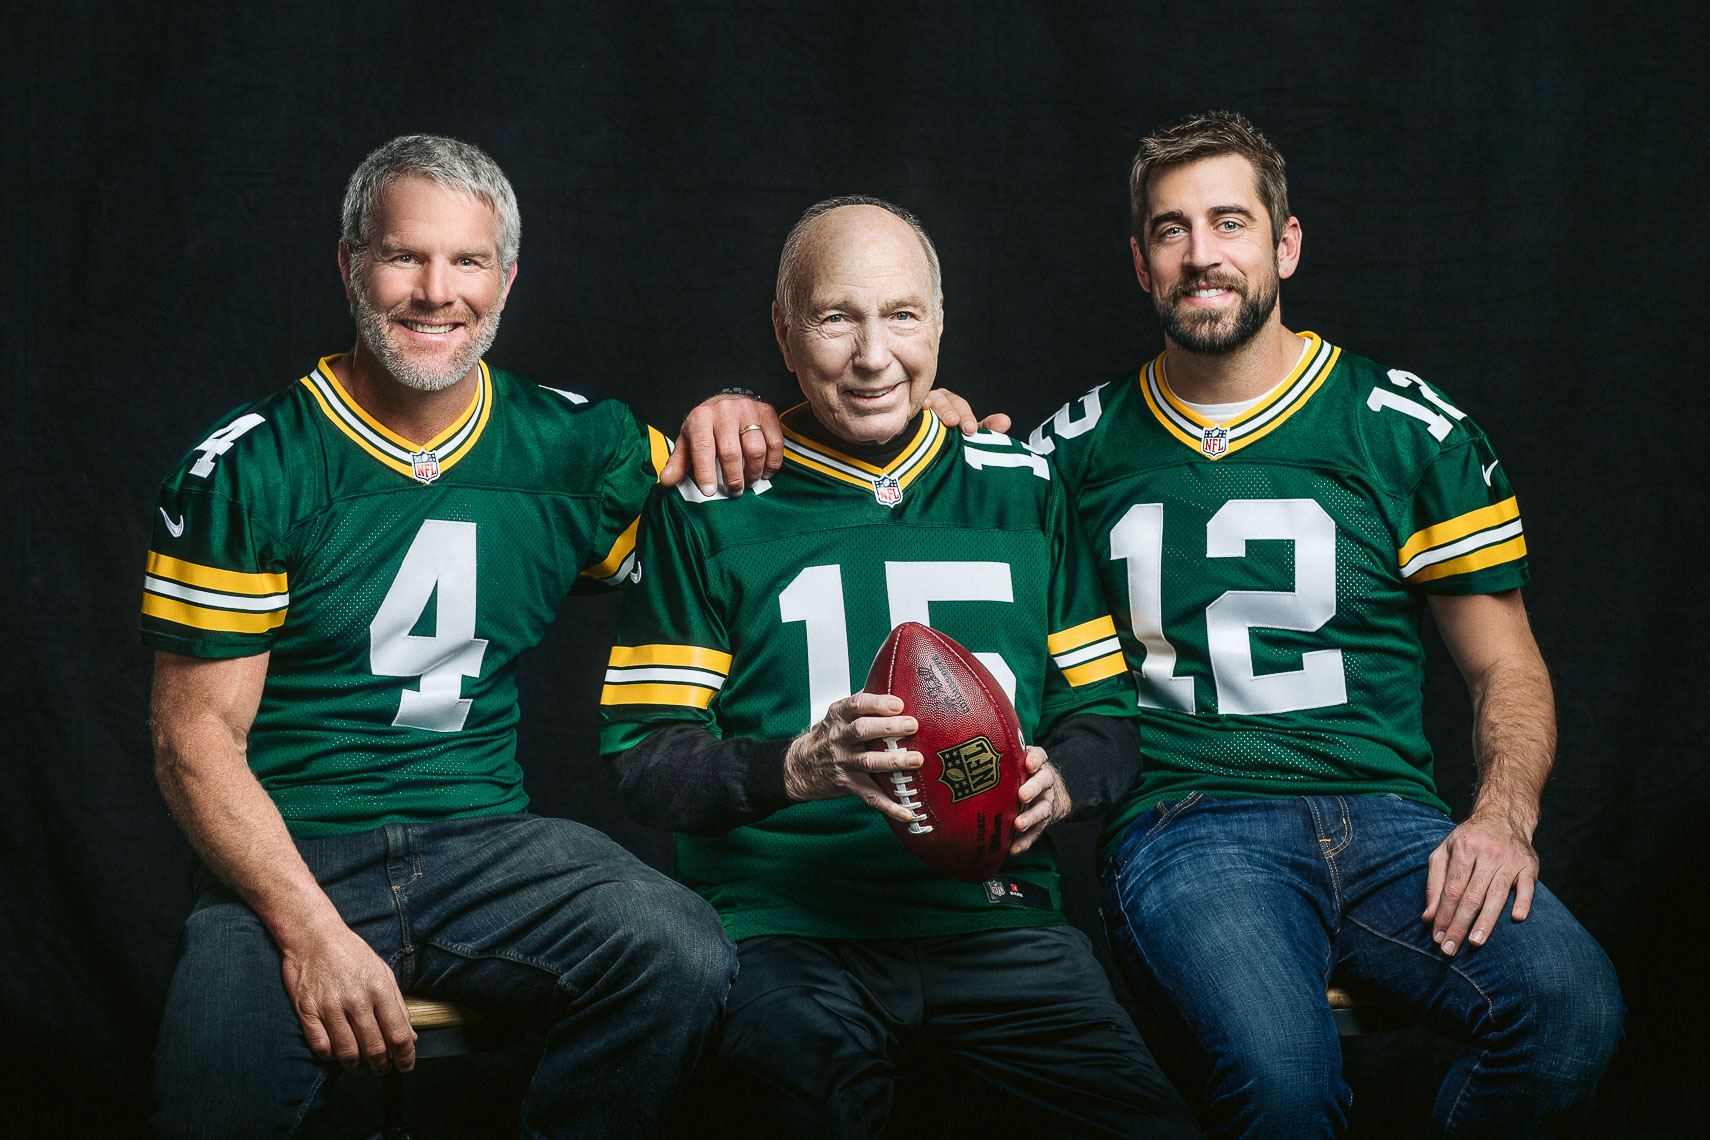 Green Bay Packers legendary quarterbacks Brett Favre, Bart Star and Aaron Rodgers celebrity portrait photographer NFL athlete Packers photography